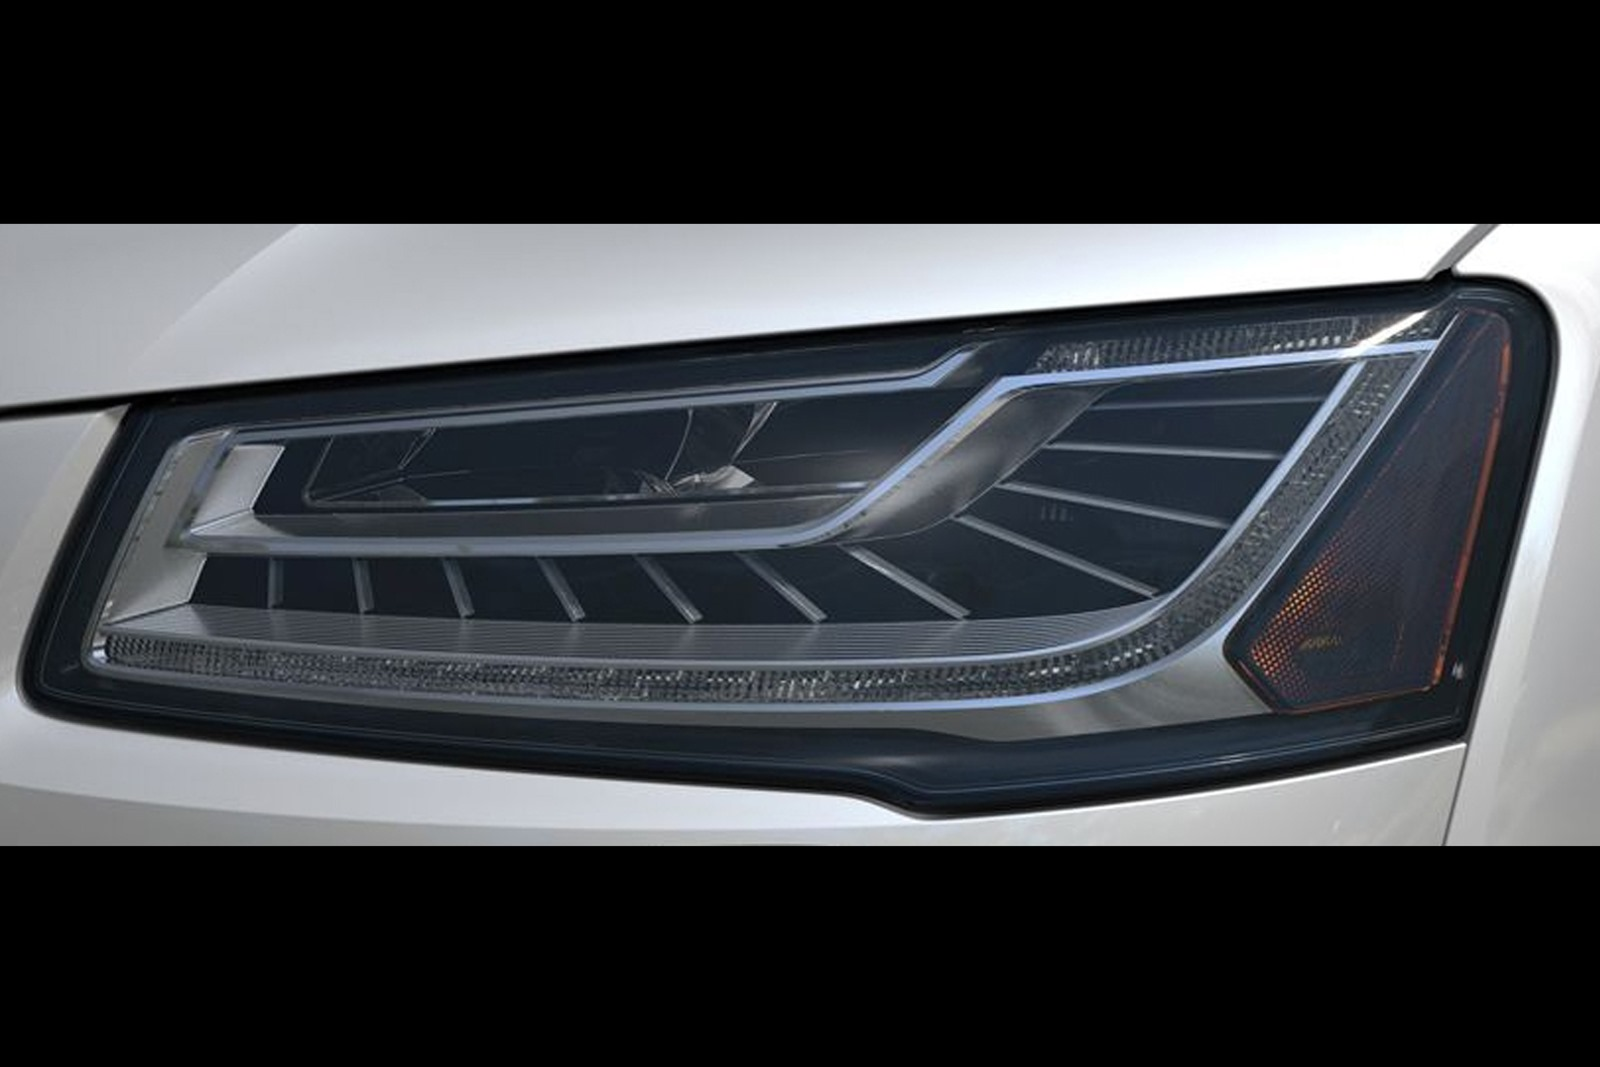 Audi A8 Headlights : Audi teases a facelift by showing new matrix